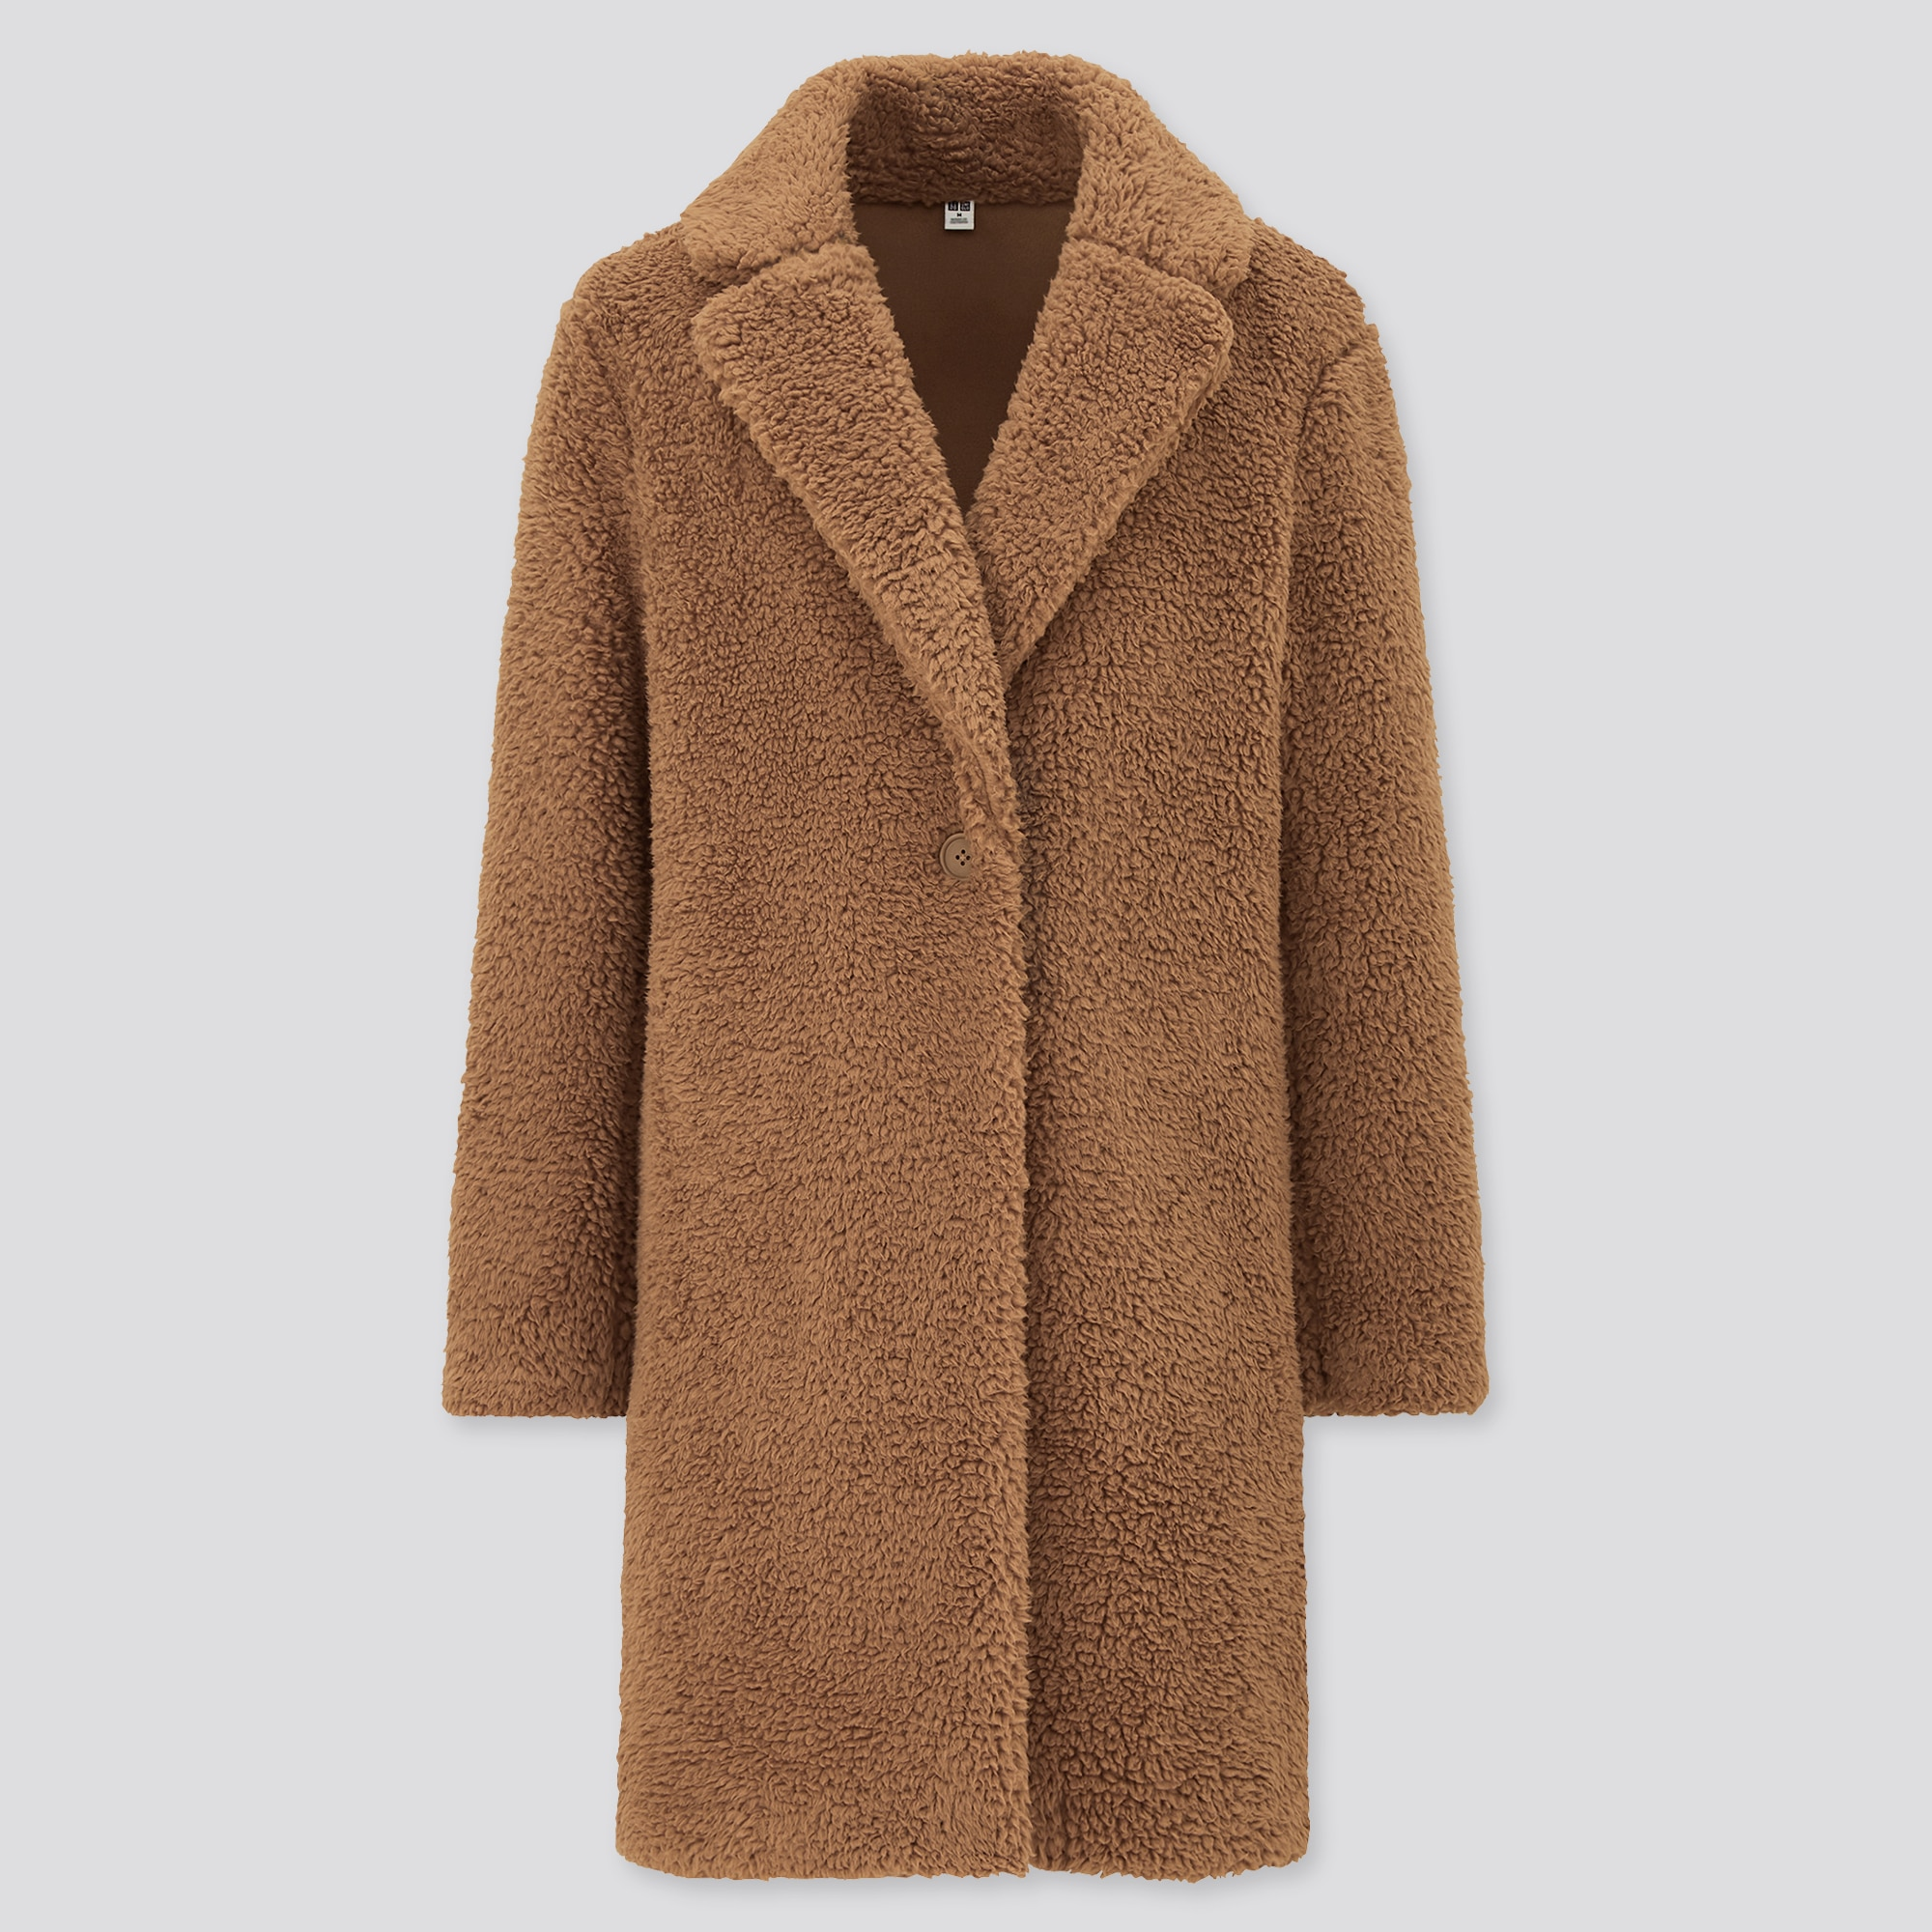 WOMEN PILE-LINED FLEECE TAILORED COAT : Color - 35 Brown, Size - M (428333)